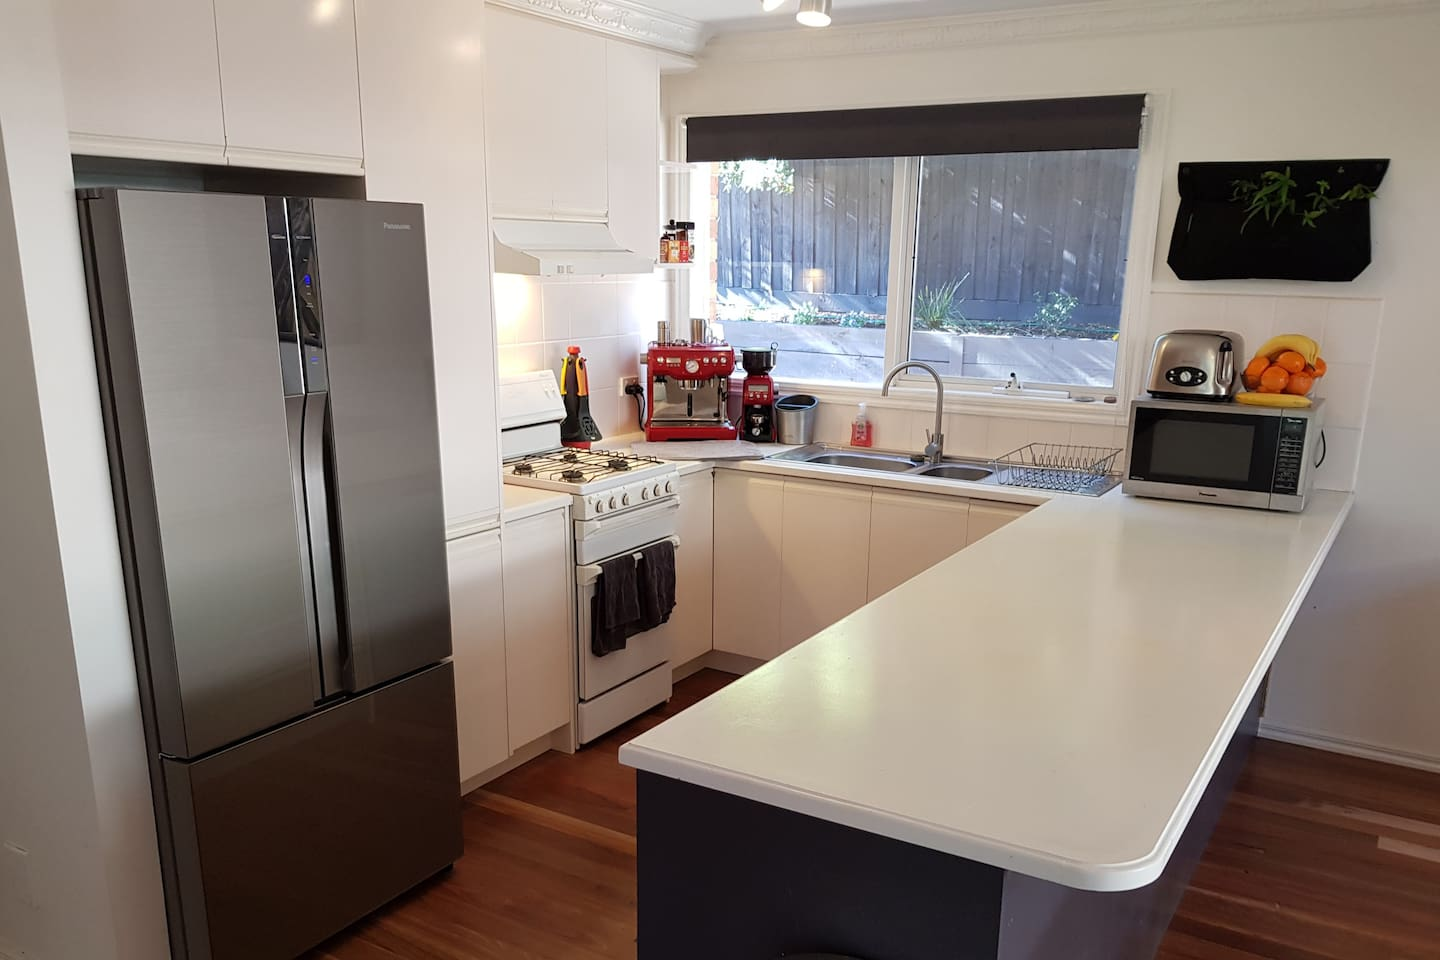 Fully stocked kitchen with gas stove and barrister style coffee machine